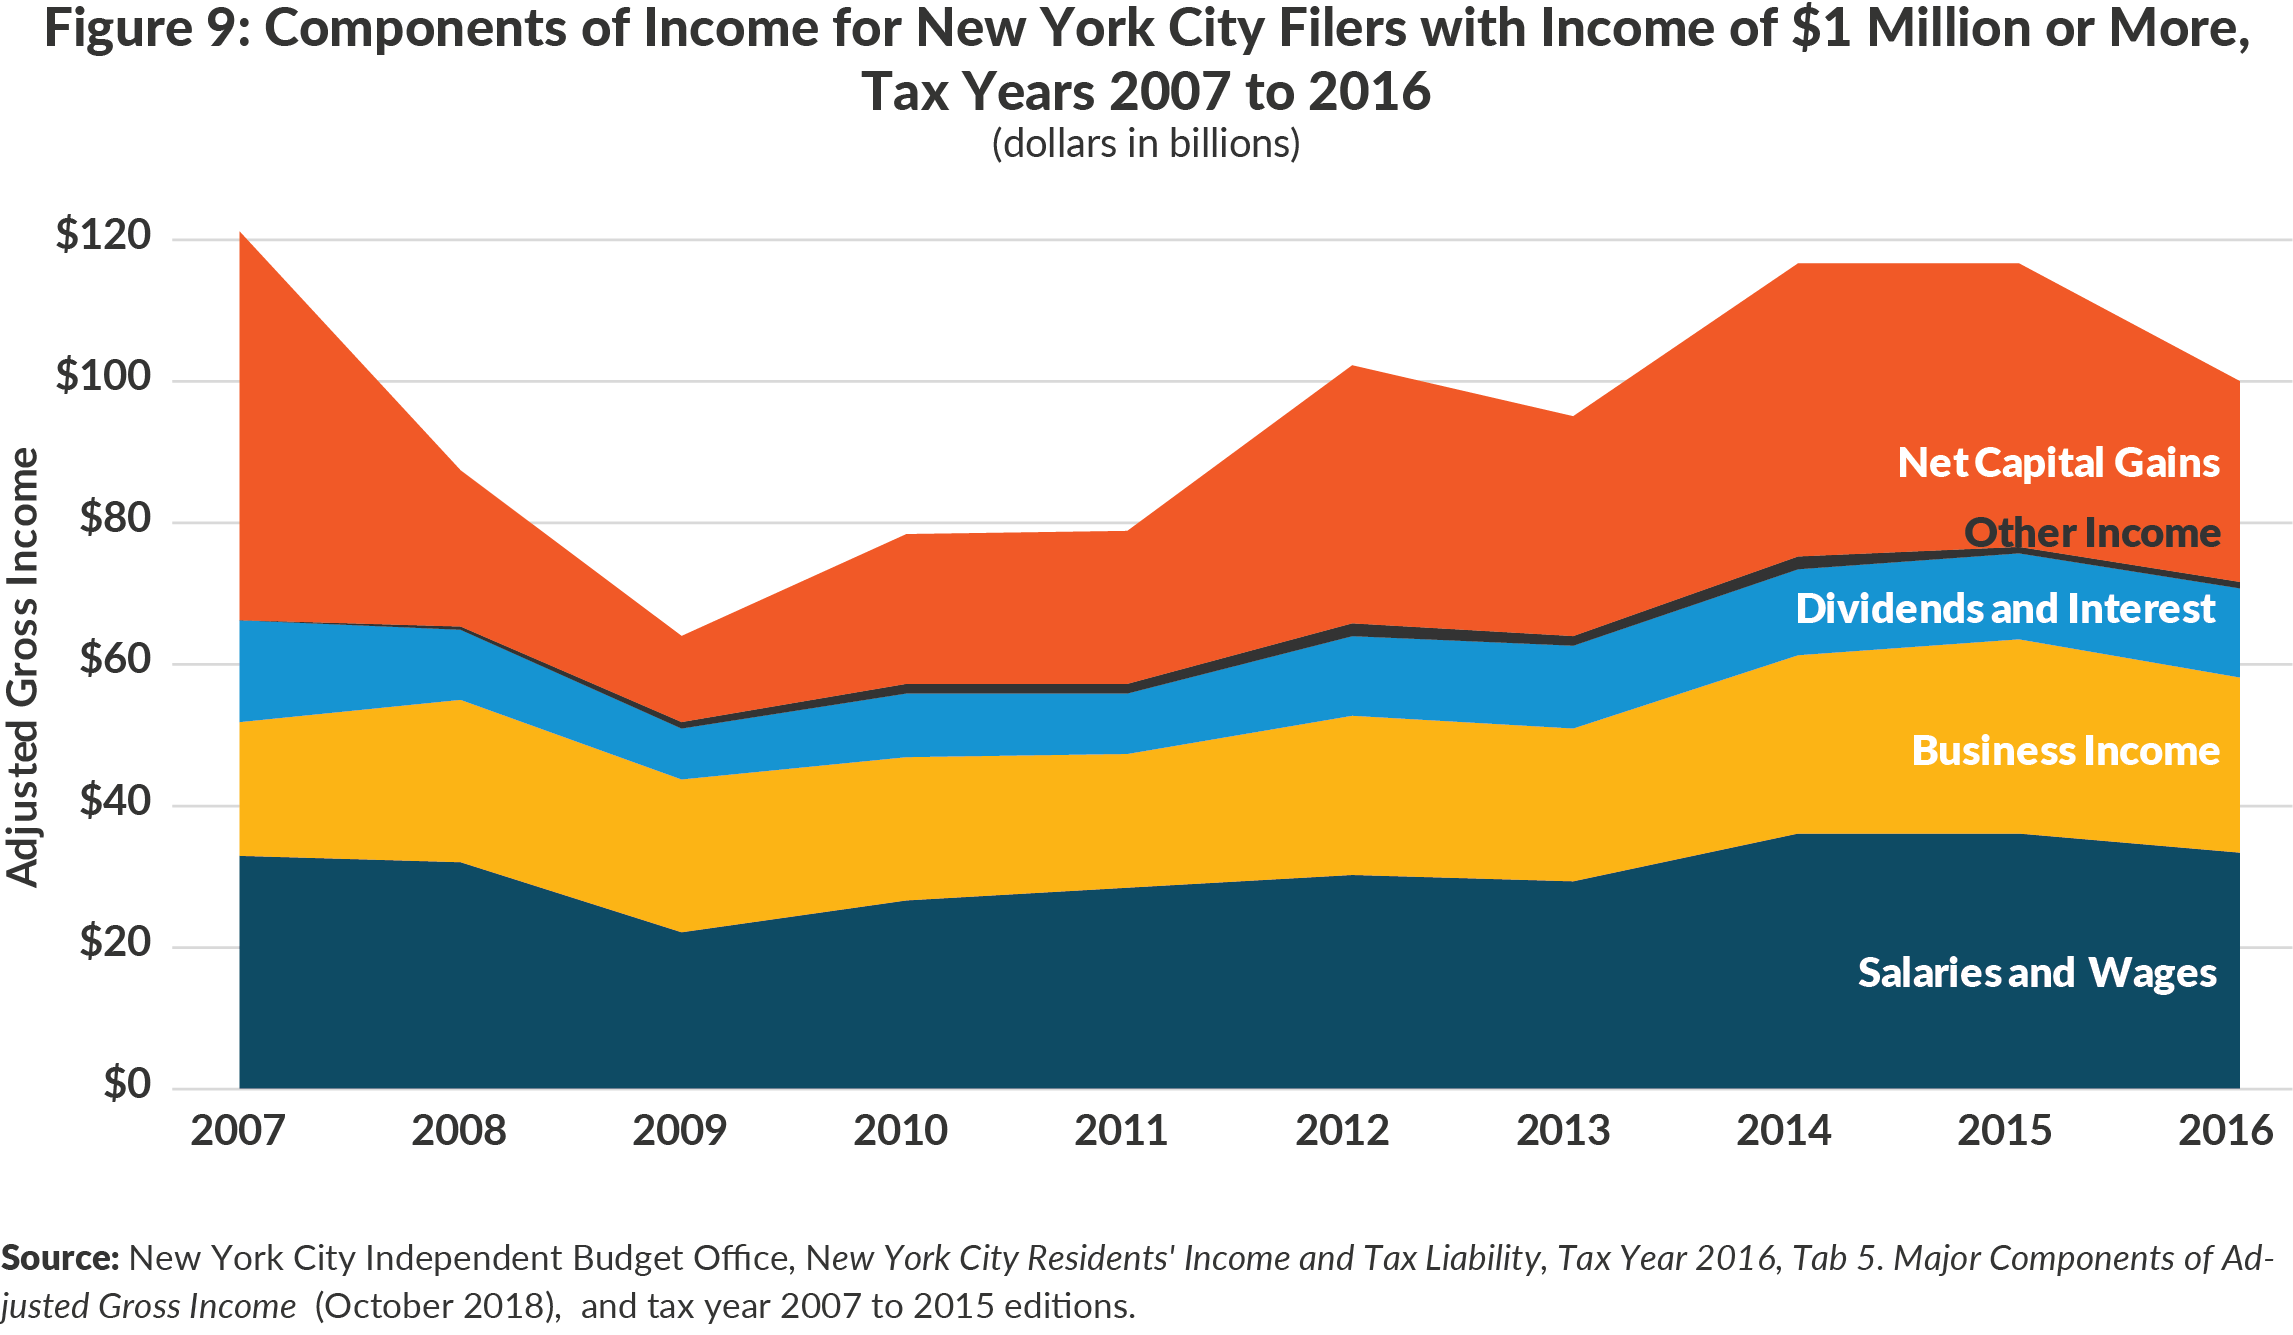 Figure 9: Components of Income for New York City Filers with Income Over $1 Million,Tax Years 2007 to 2016